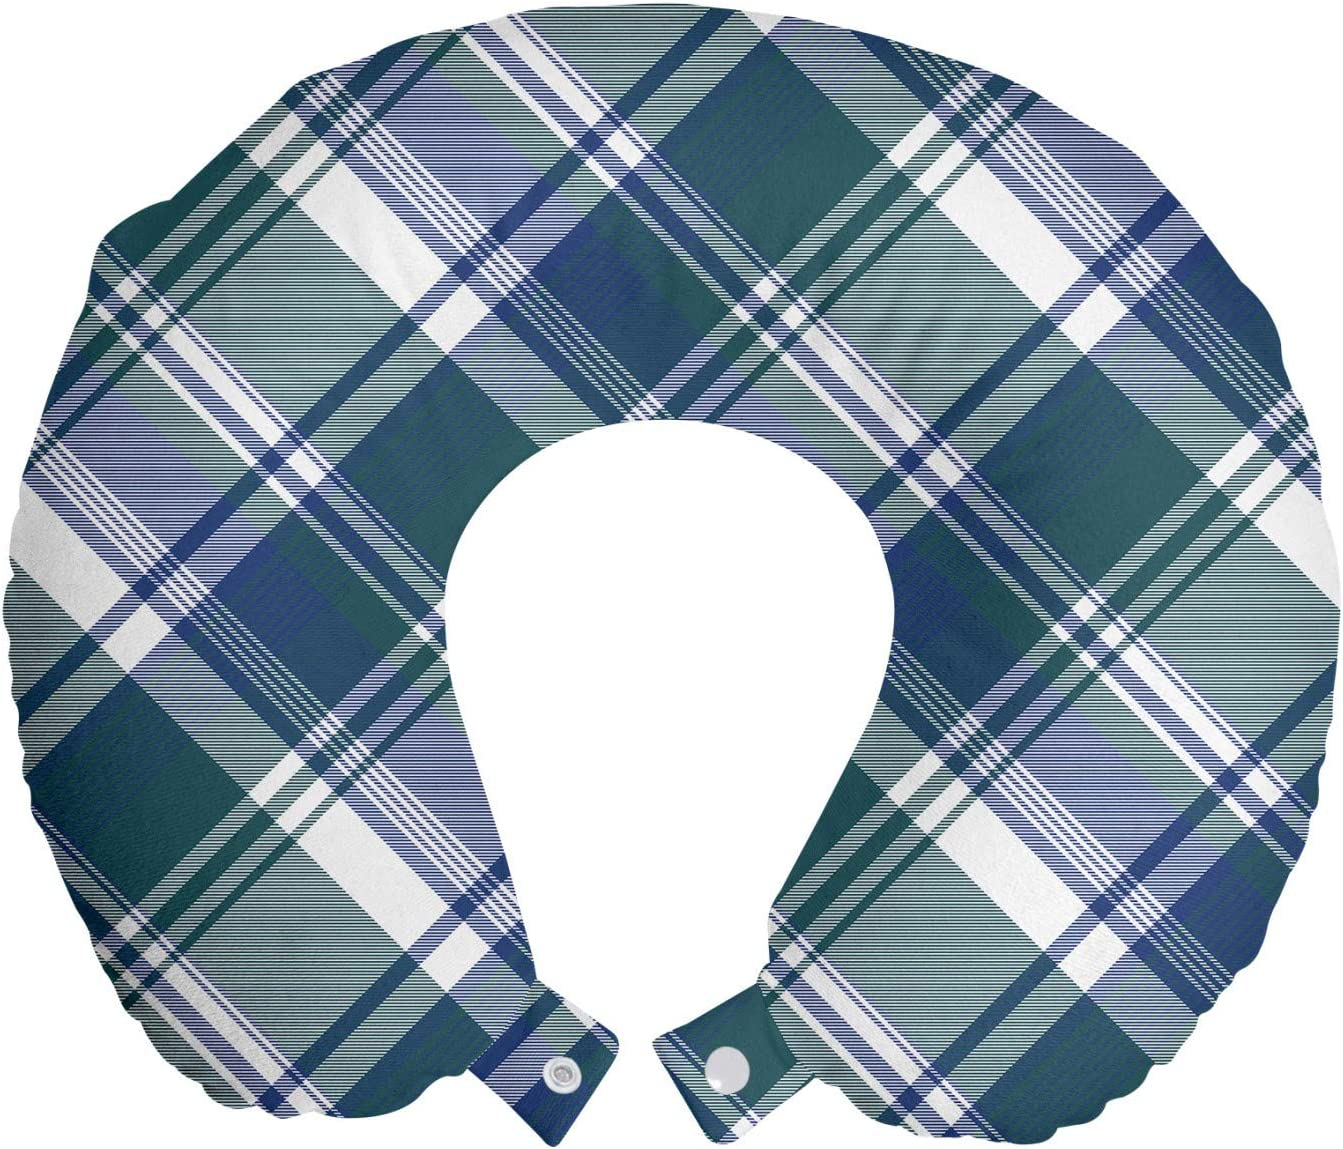 Amazon Com Lunarable Navy Plaid Travel Pillow Neck Rest Overlapped Diagonal Lines Checkered Fashion Illustration Memory Foam Traveling Accessory For Airplane And Car 12 Dark Teal Dark Lavender Home Kitchen